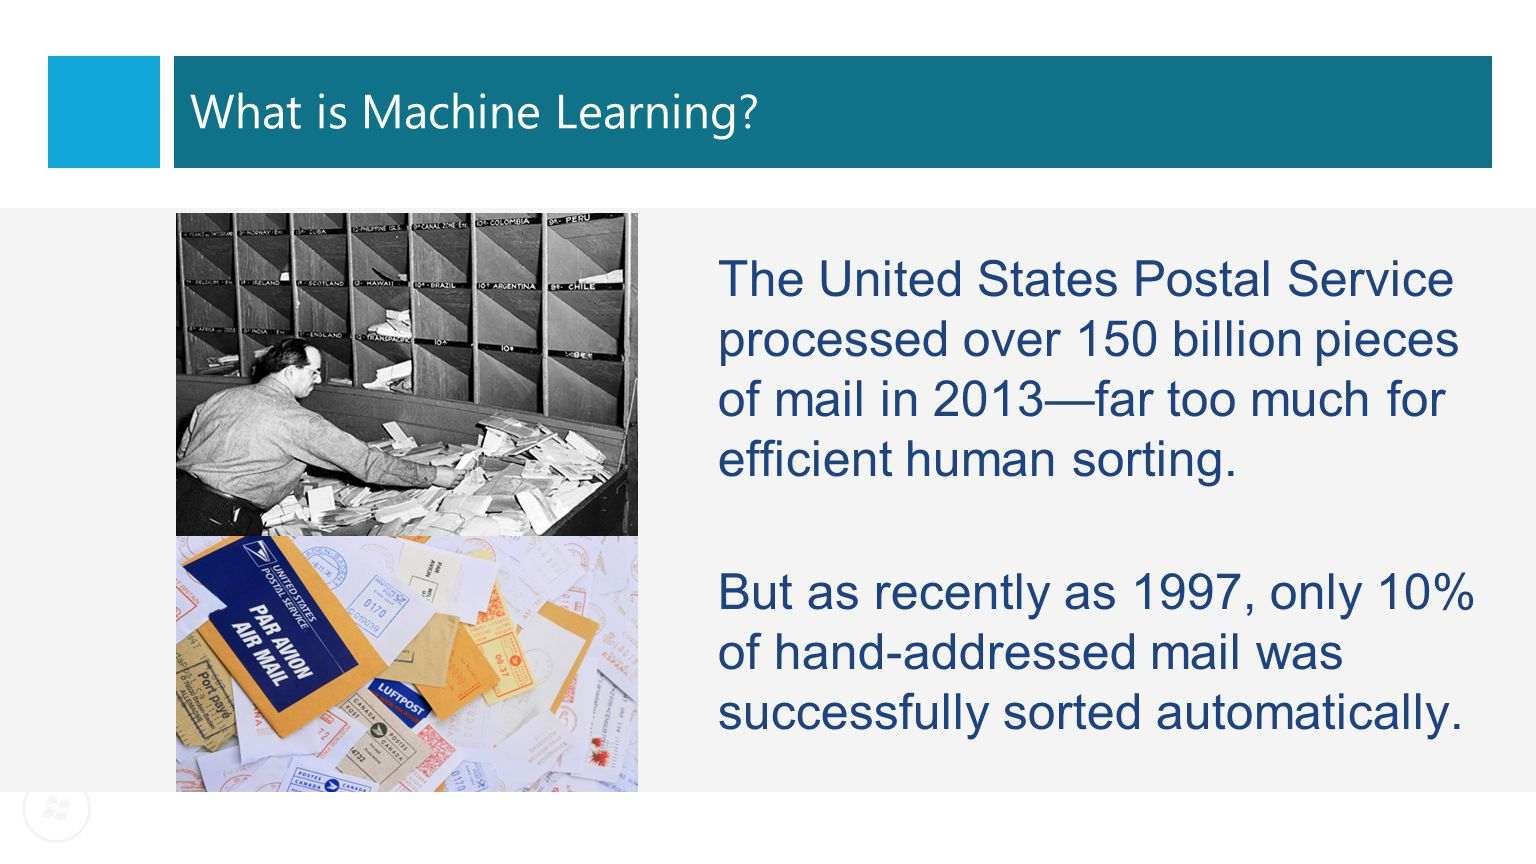 The United States Postal Service processed over 150 billion pieces of mail in 2013—far too much for efficient human sorting. But as recently as 1997,